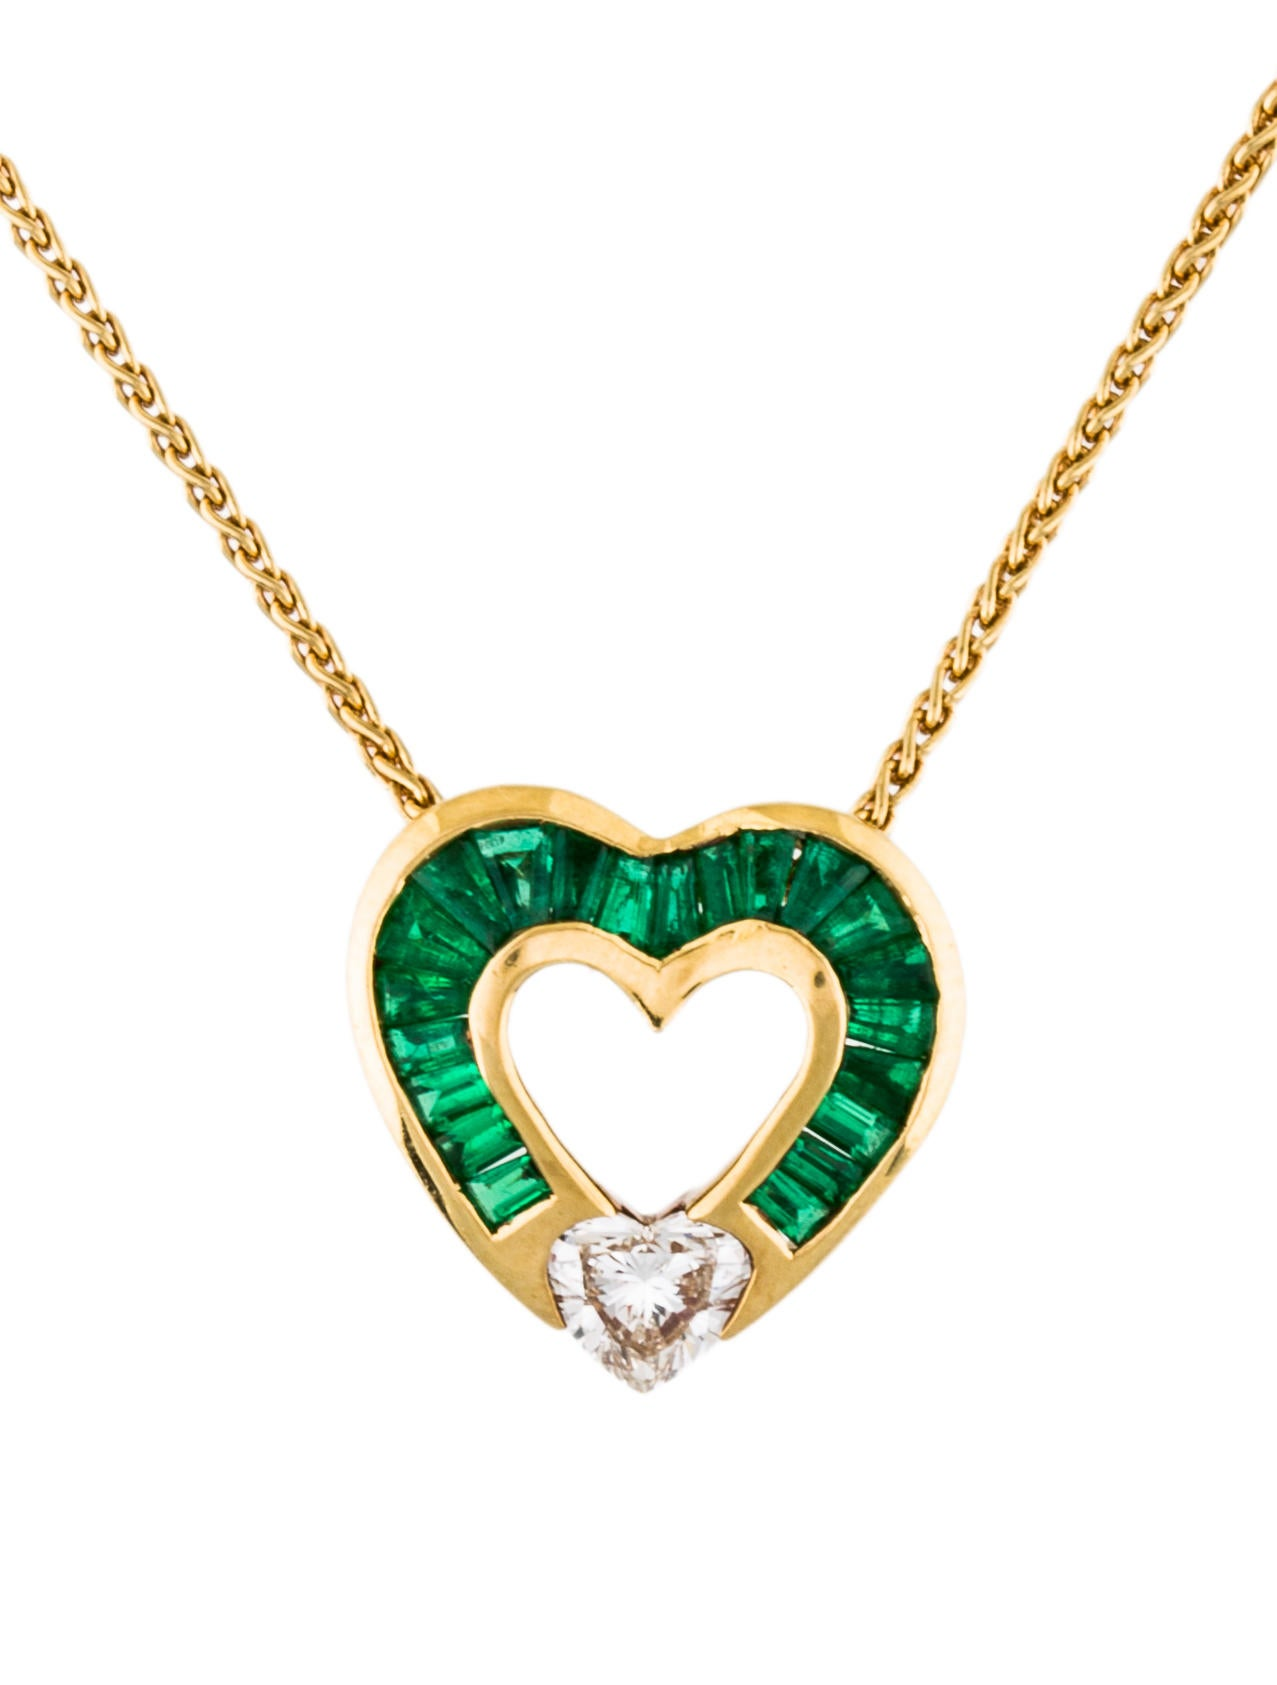 Charles krypell 18k diamond emerald heart pendant necklace 18k diamond emerald heart pendant necklace aloadofball Gallery